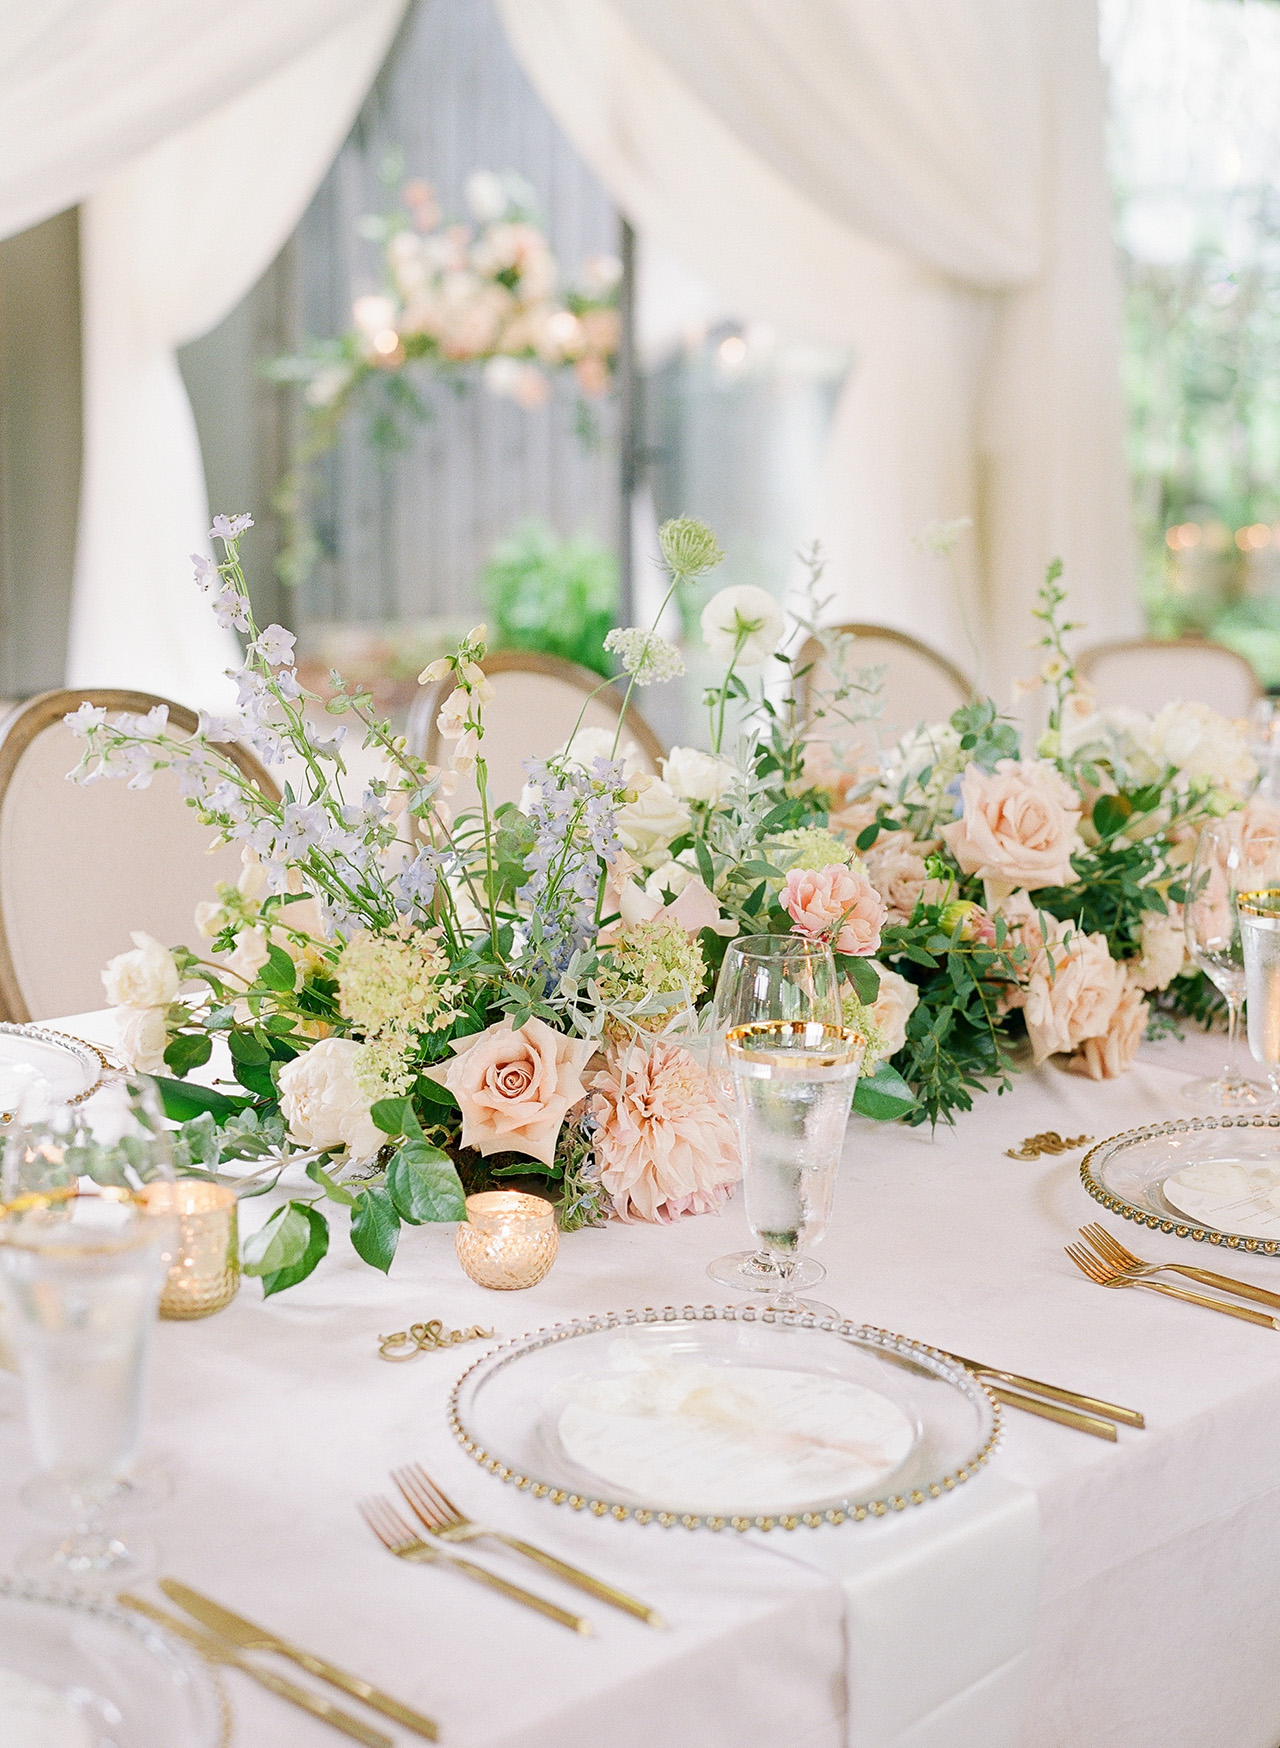 adrienne will wedding tables centerpieces